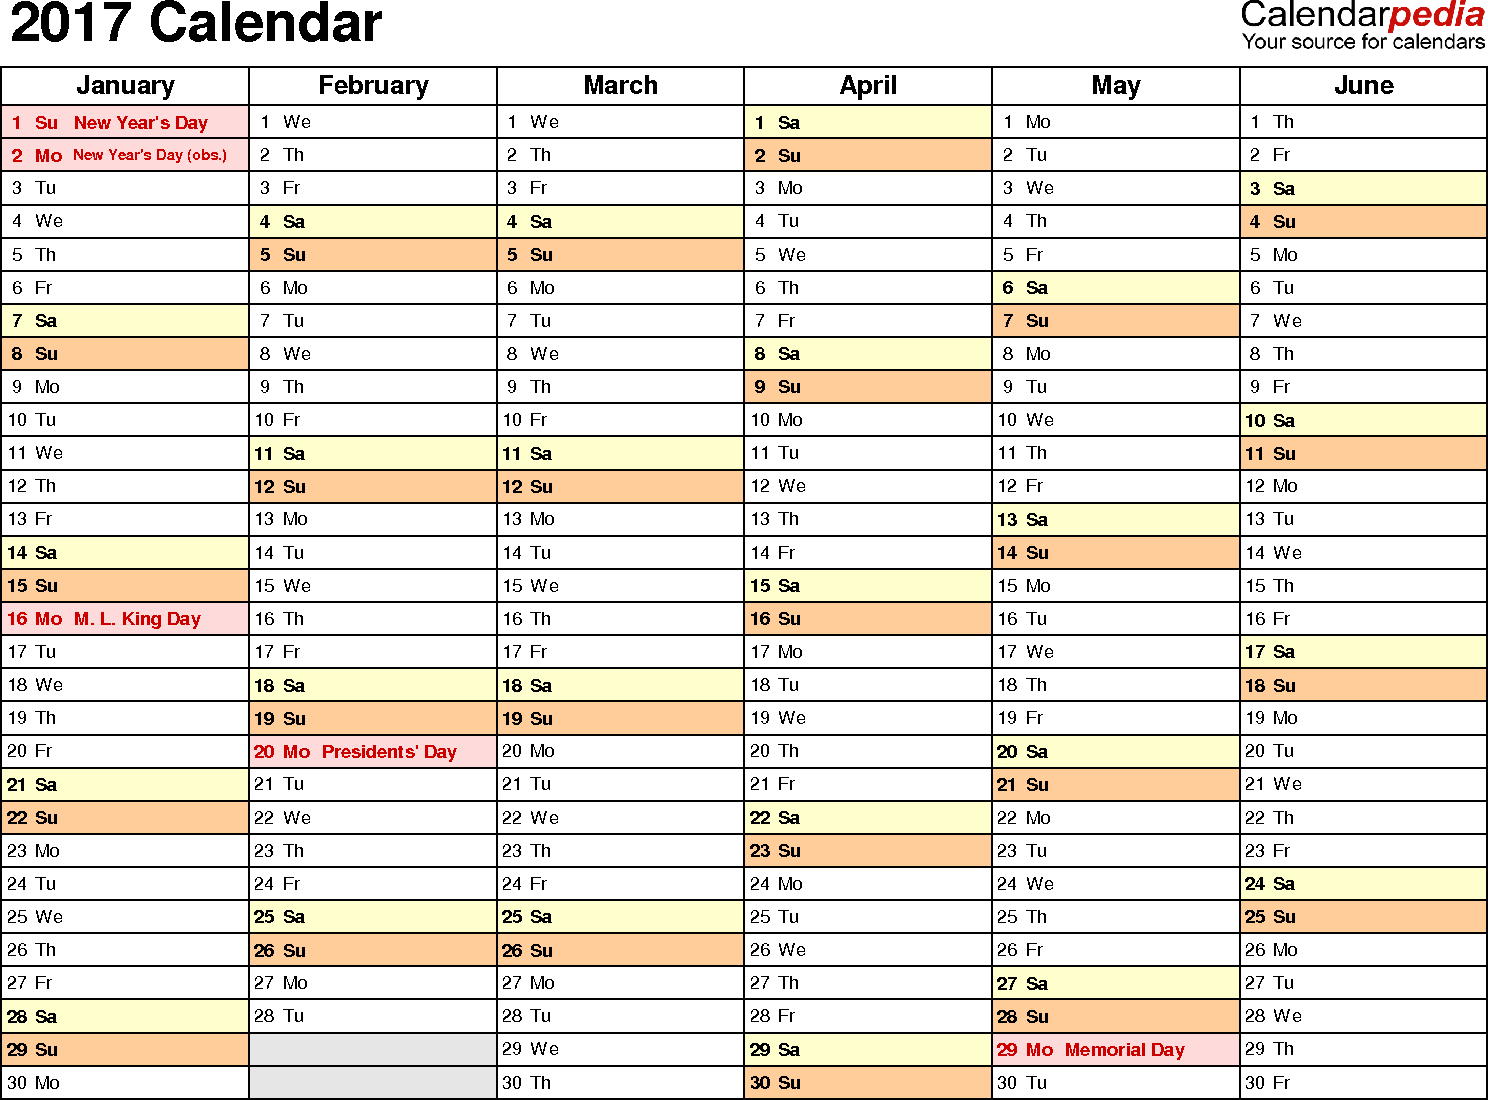 Ediblewildsus  Winning  Calendar  Download  Free Printable Excel Templates Xls With Fascinating Template   Calendar For Excel Months Horizontally  Pages Landscape Orientation With Enchanting Excel Remove White Space Also Word Count On Excel In Addition Sparklines In Excel  And Excel Training For Beginners As Well As Create Sql Database From Excel Additionally How To Make A Formula On Excel From Calendarpediacom With Ediblewildsus  Fascinating  Calendar  Download  Free Printable Excel Templates Xls With Enchanting Template   Calendar For Excel Months Horizontally  Pages Landscape Orientation And Winning Excel Remove White Space Also Word Count On Excel In Addition Sparklines In Excel  From Calendarpediacom